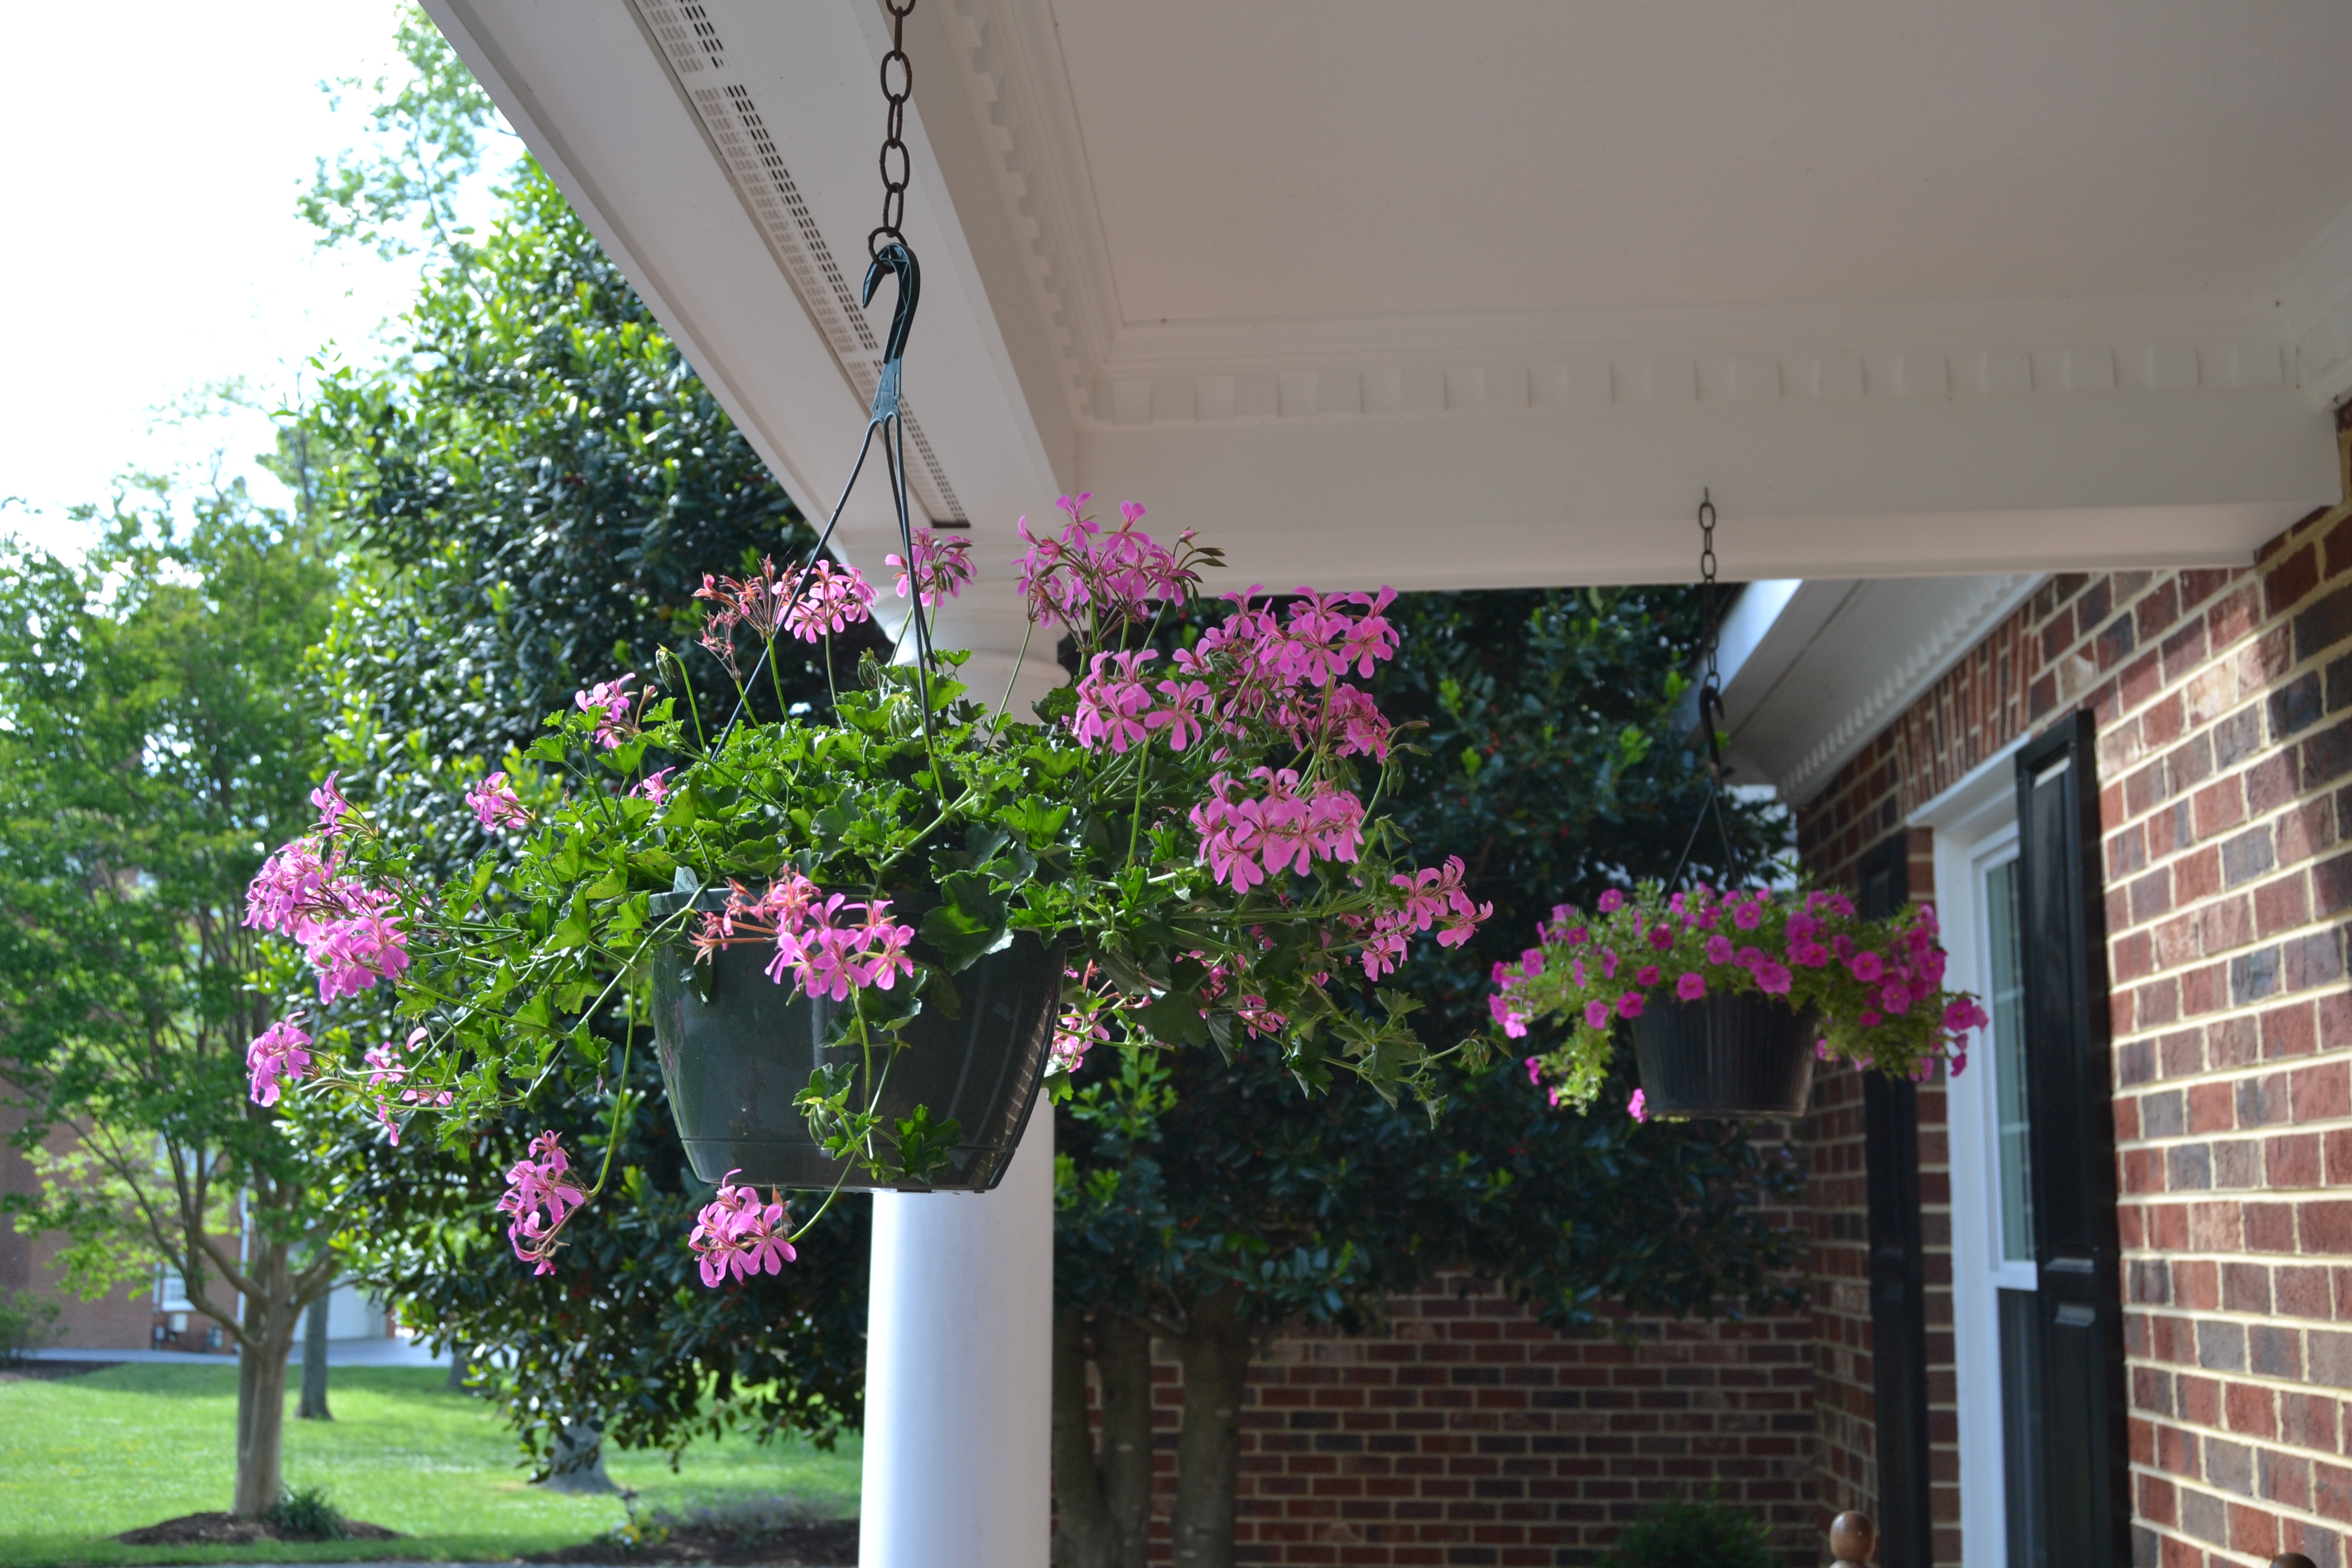 Spring is in bloom these days of mine for Front porch hanging plants